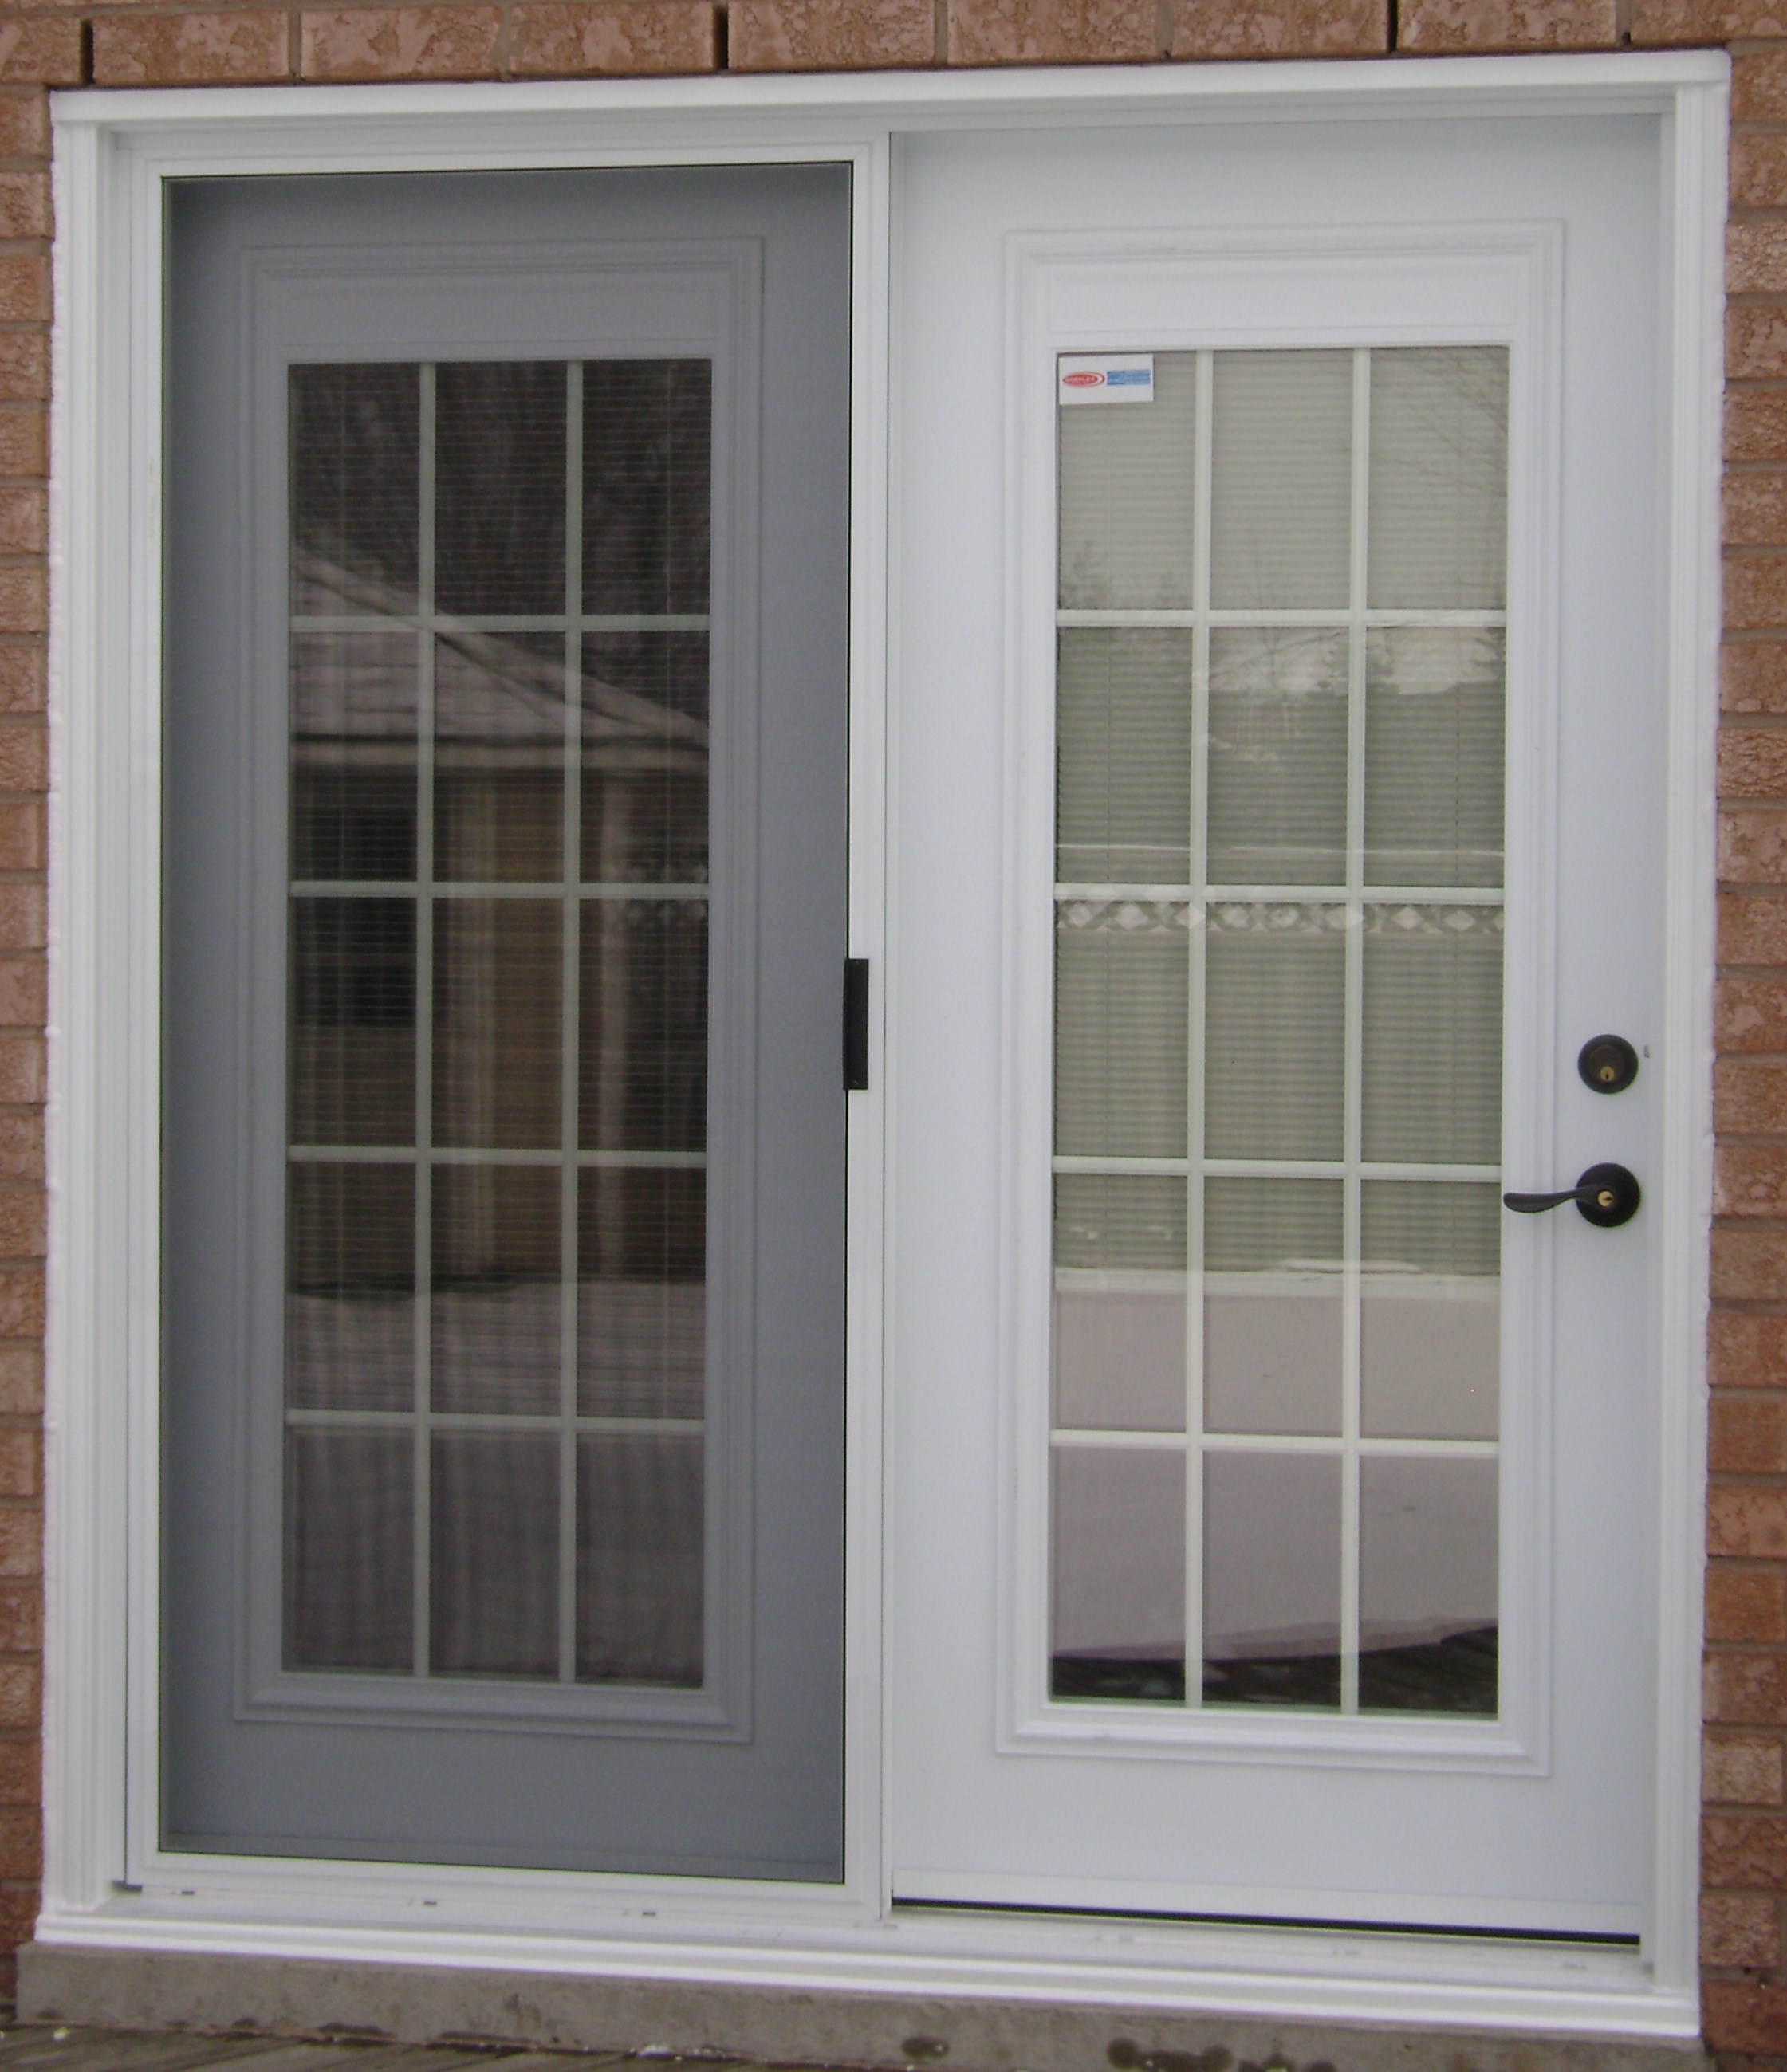 French doors garden doors mississauga french garden for Main door with french window